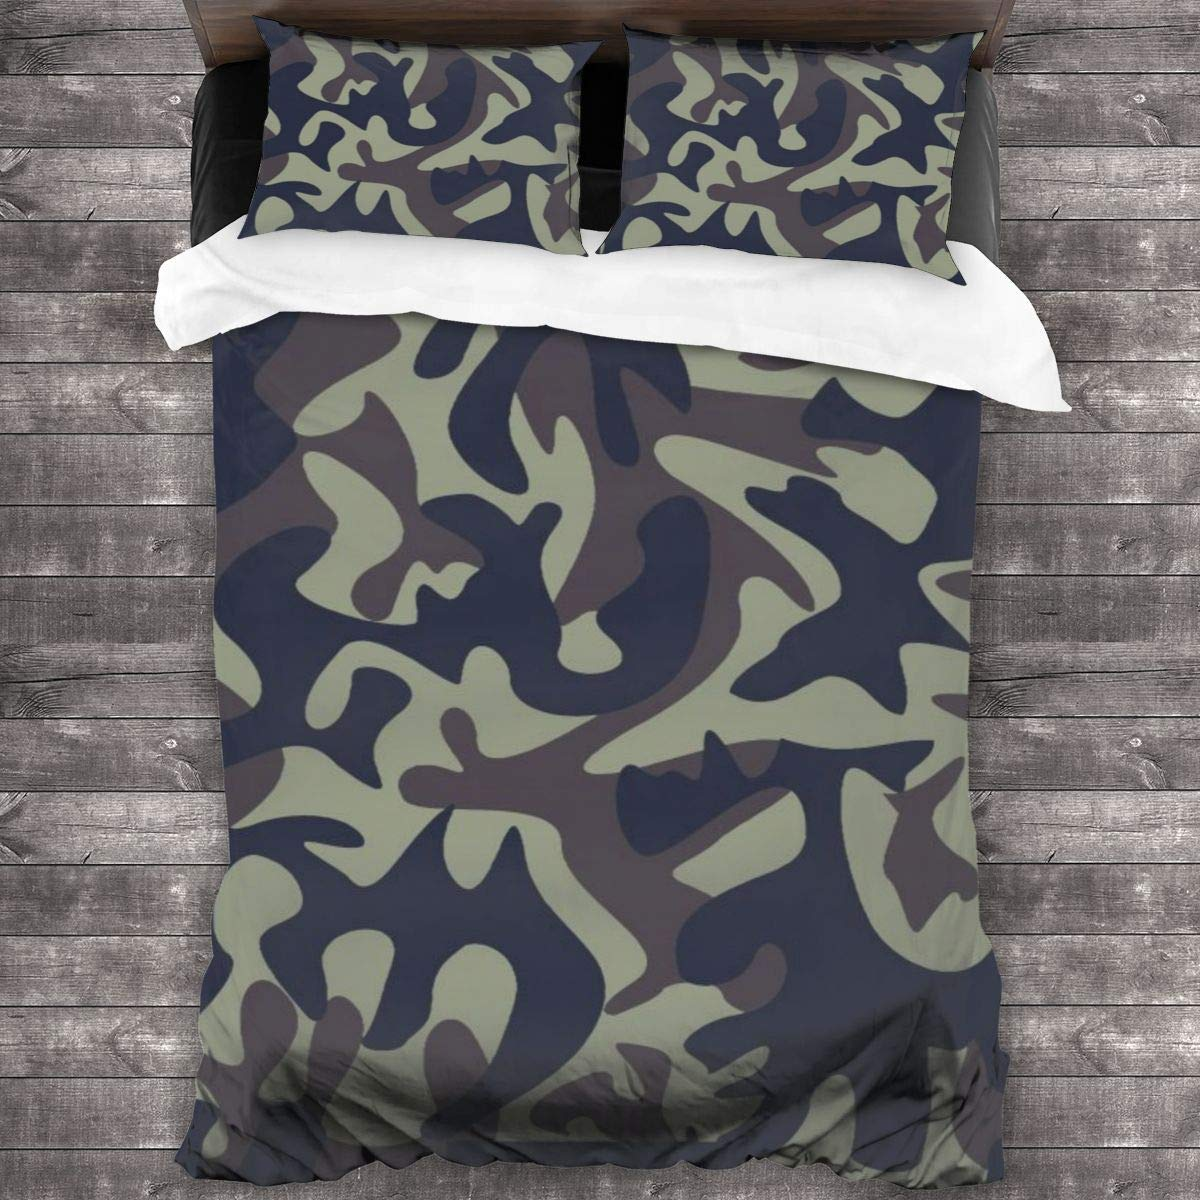 """ACHOGI Twin Size Digital Multicam Print Bedding Duvet Cover 3 Piece Set Soft and Breathable with Zipper Closure & Corner Ties 86""""x70"""""""